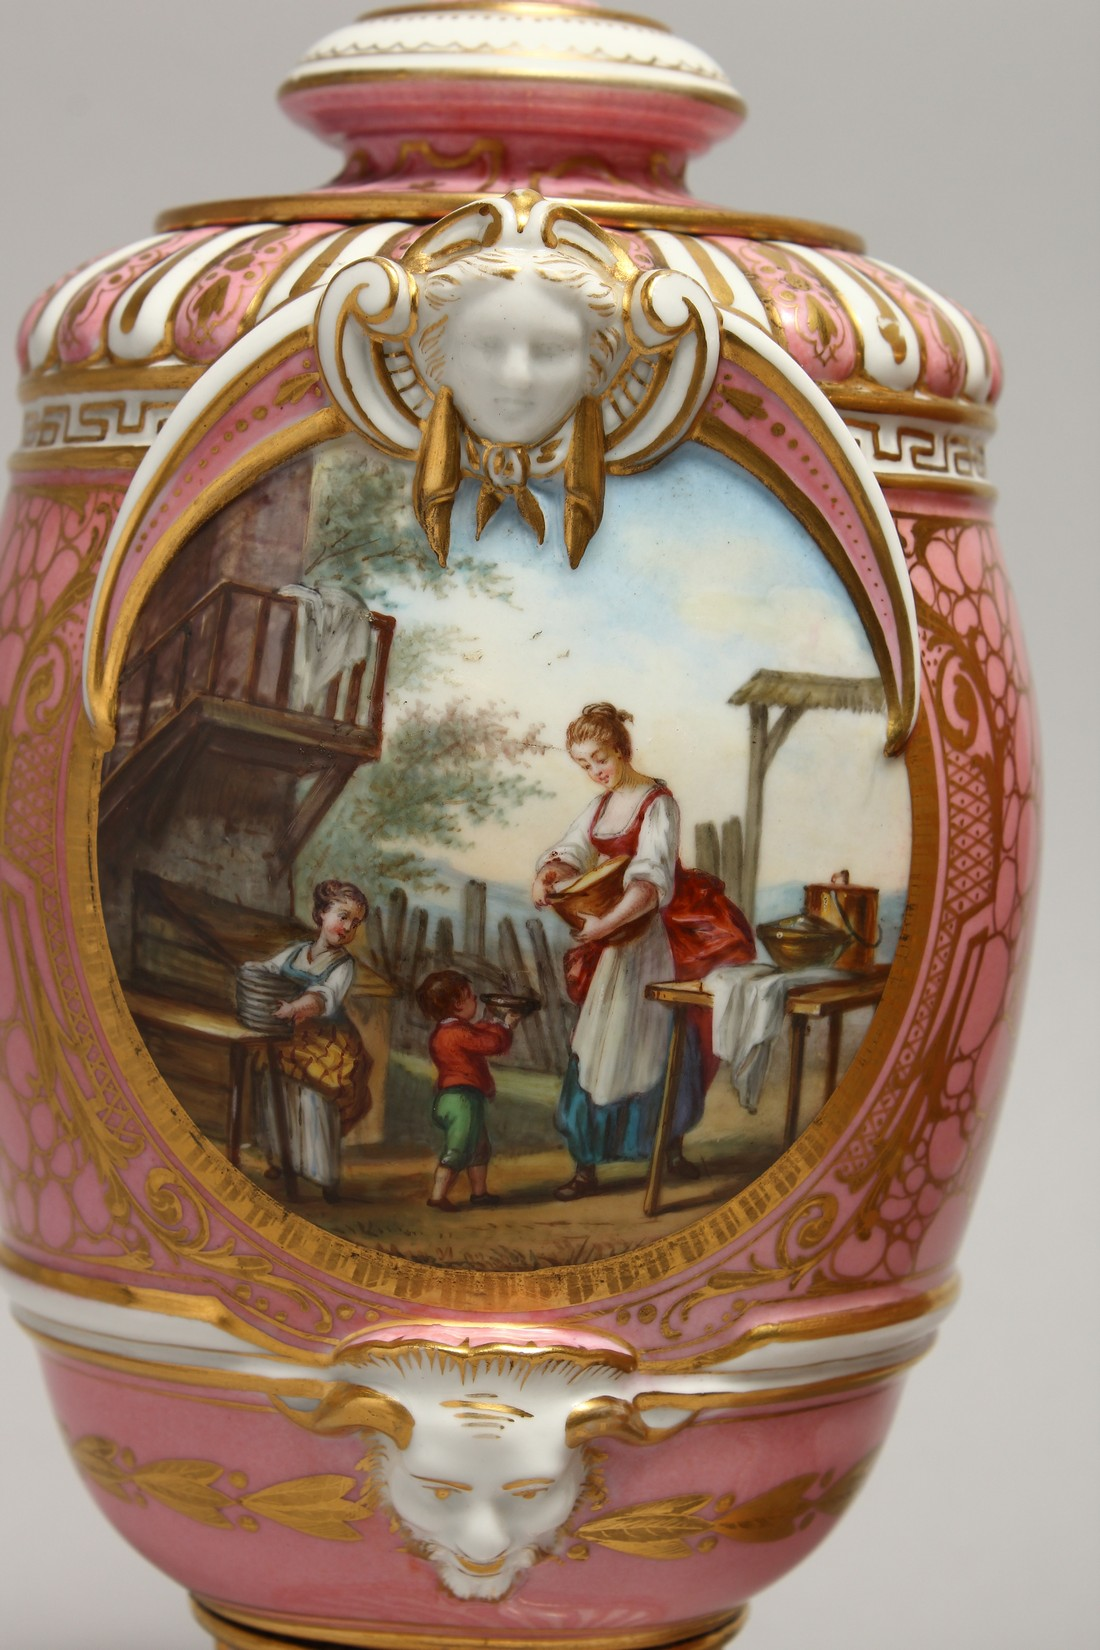 A VERY GOOD PAIR OF SEVRES PINK GROUND VASES AND COVERS each painted with reverse panels of figures, - Image 2 of 12